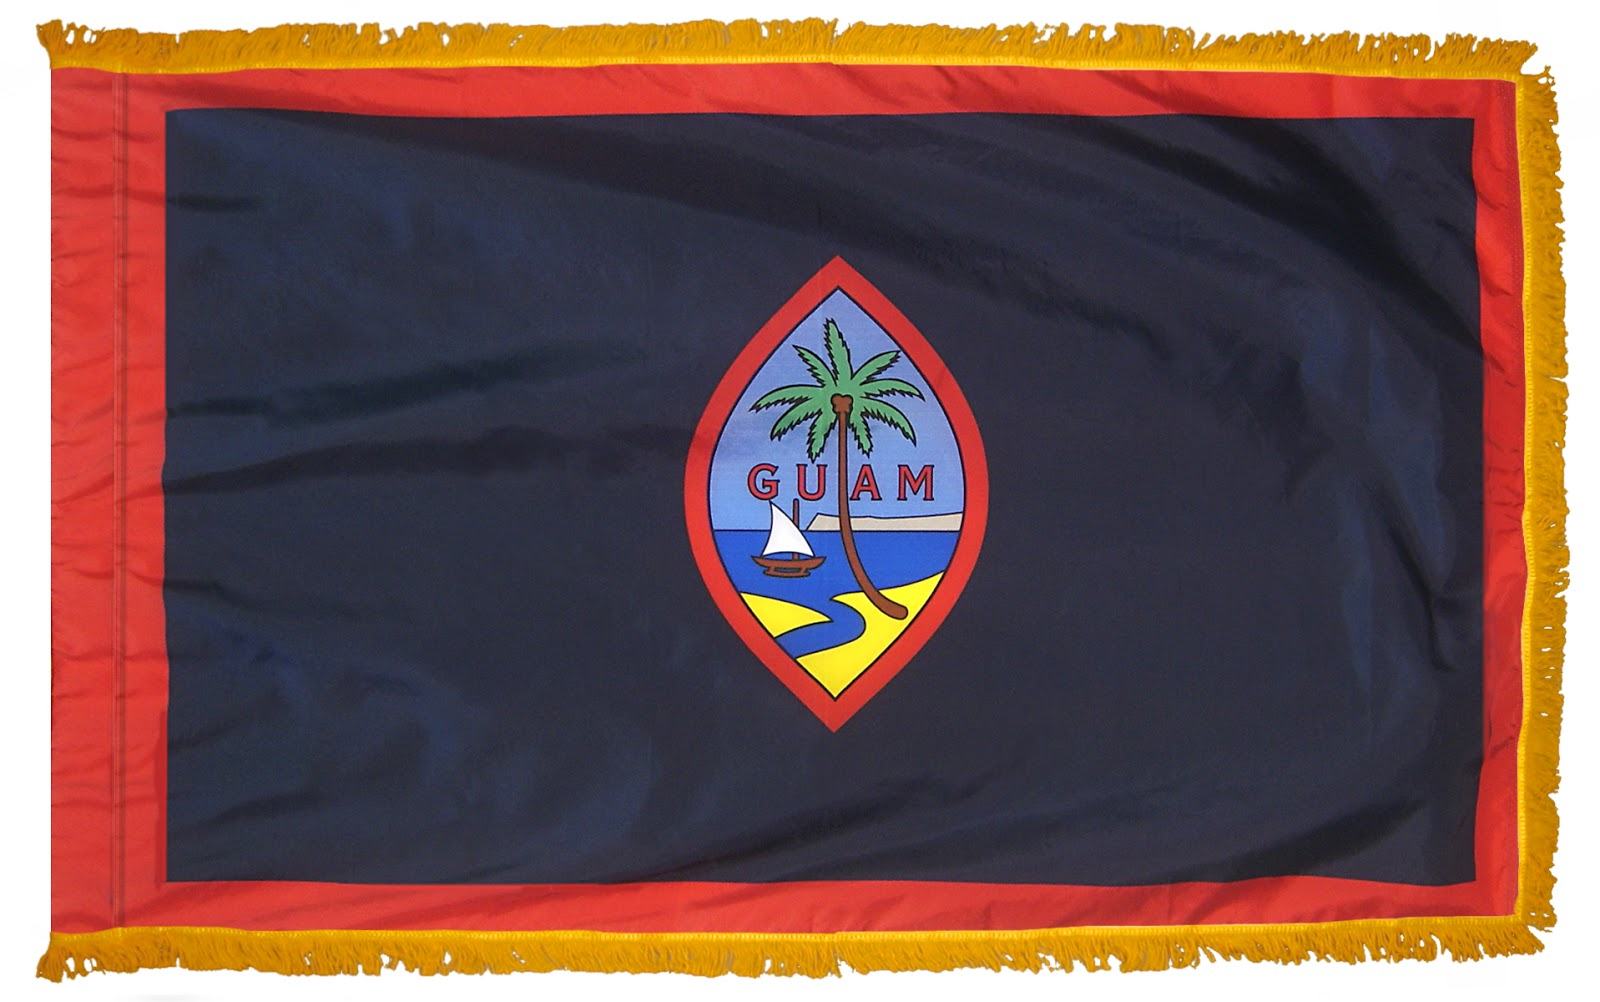 graafix flag of guam